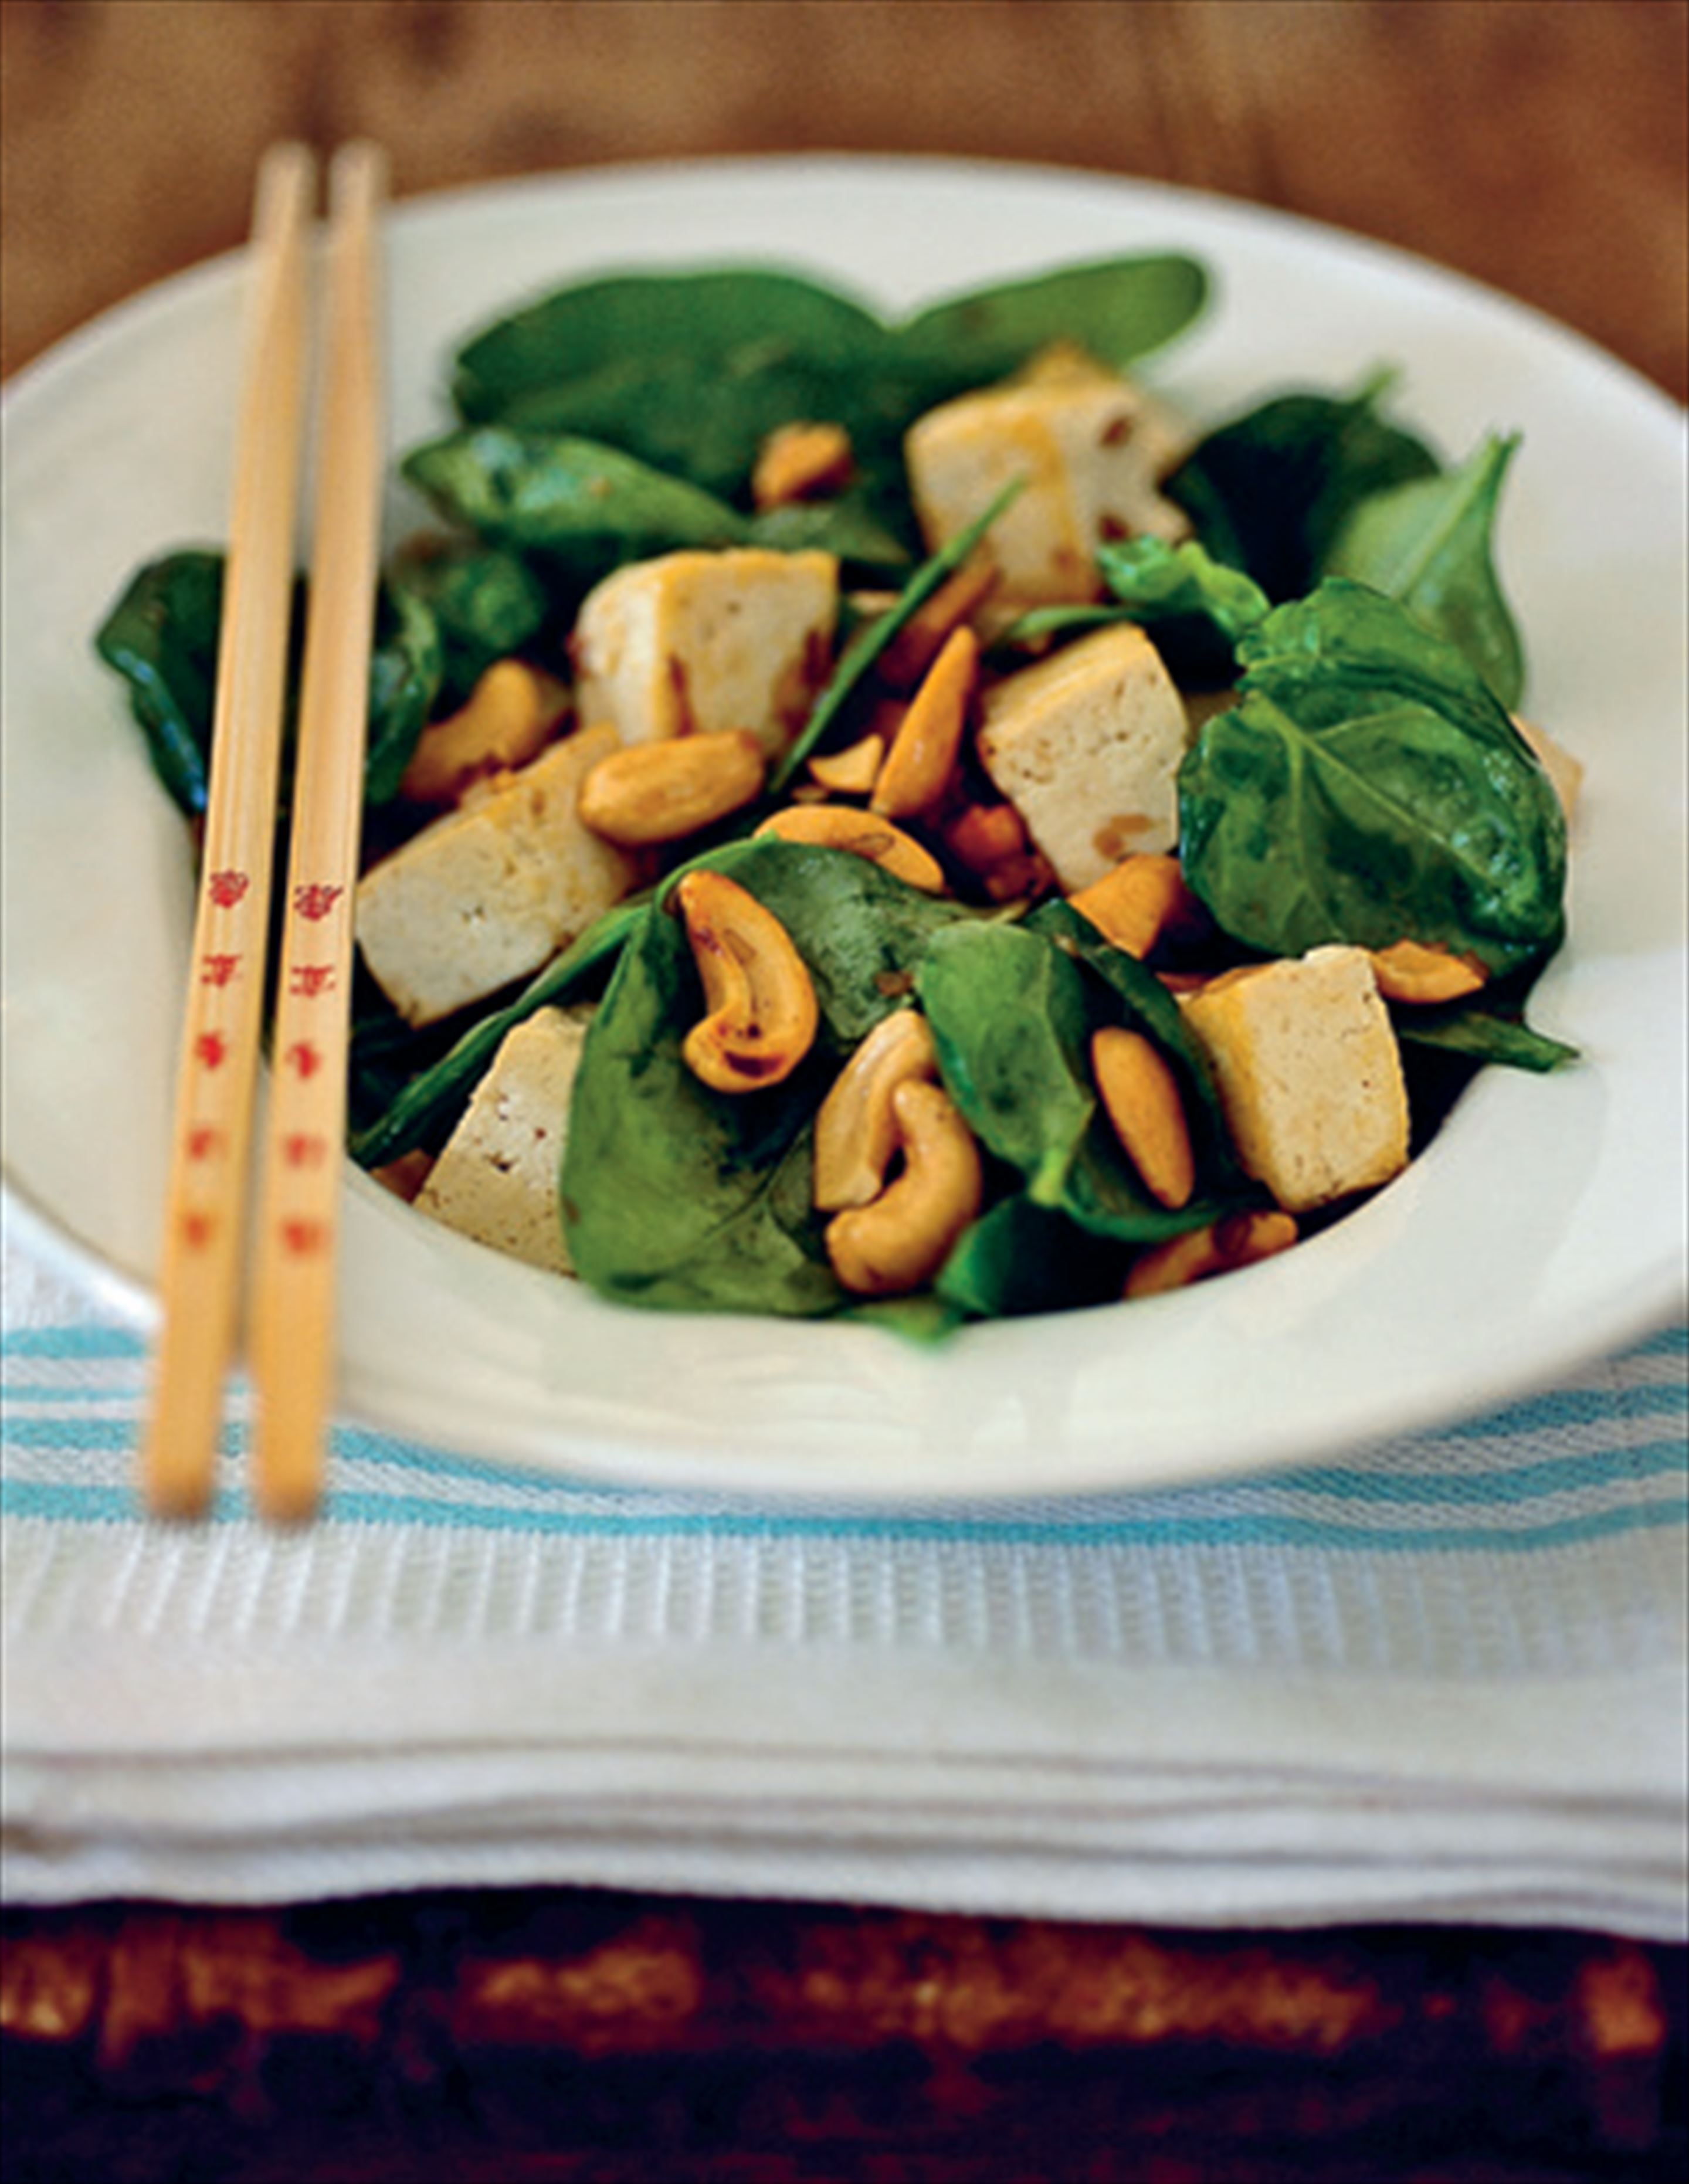 Tofu and spinach stir-fry